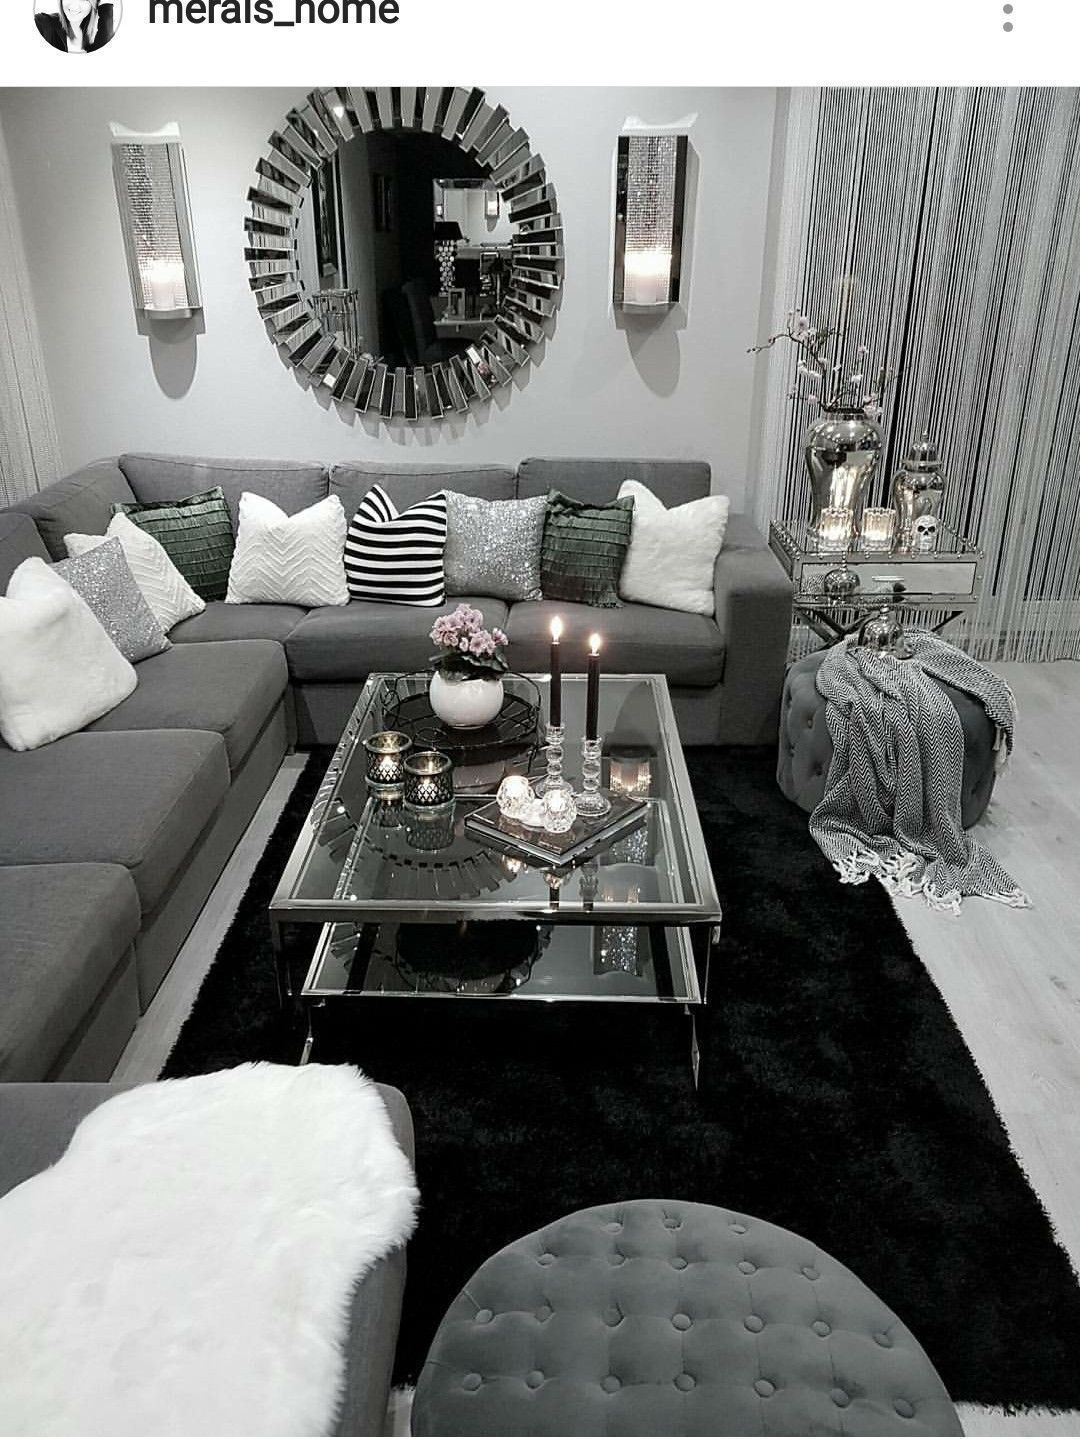 42 Comfy Apartment Living Room Decorating Ideas If You Are Looking For A Living Room Tha Silver Living Room Living Room Decor Apartment Apartment Living Room